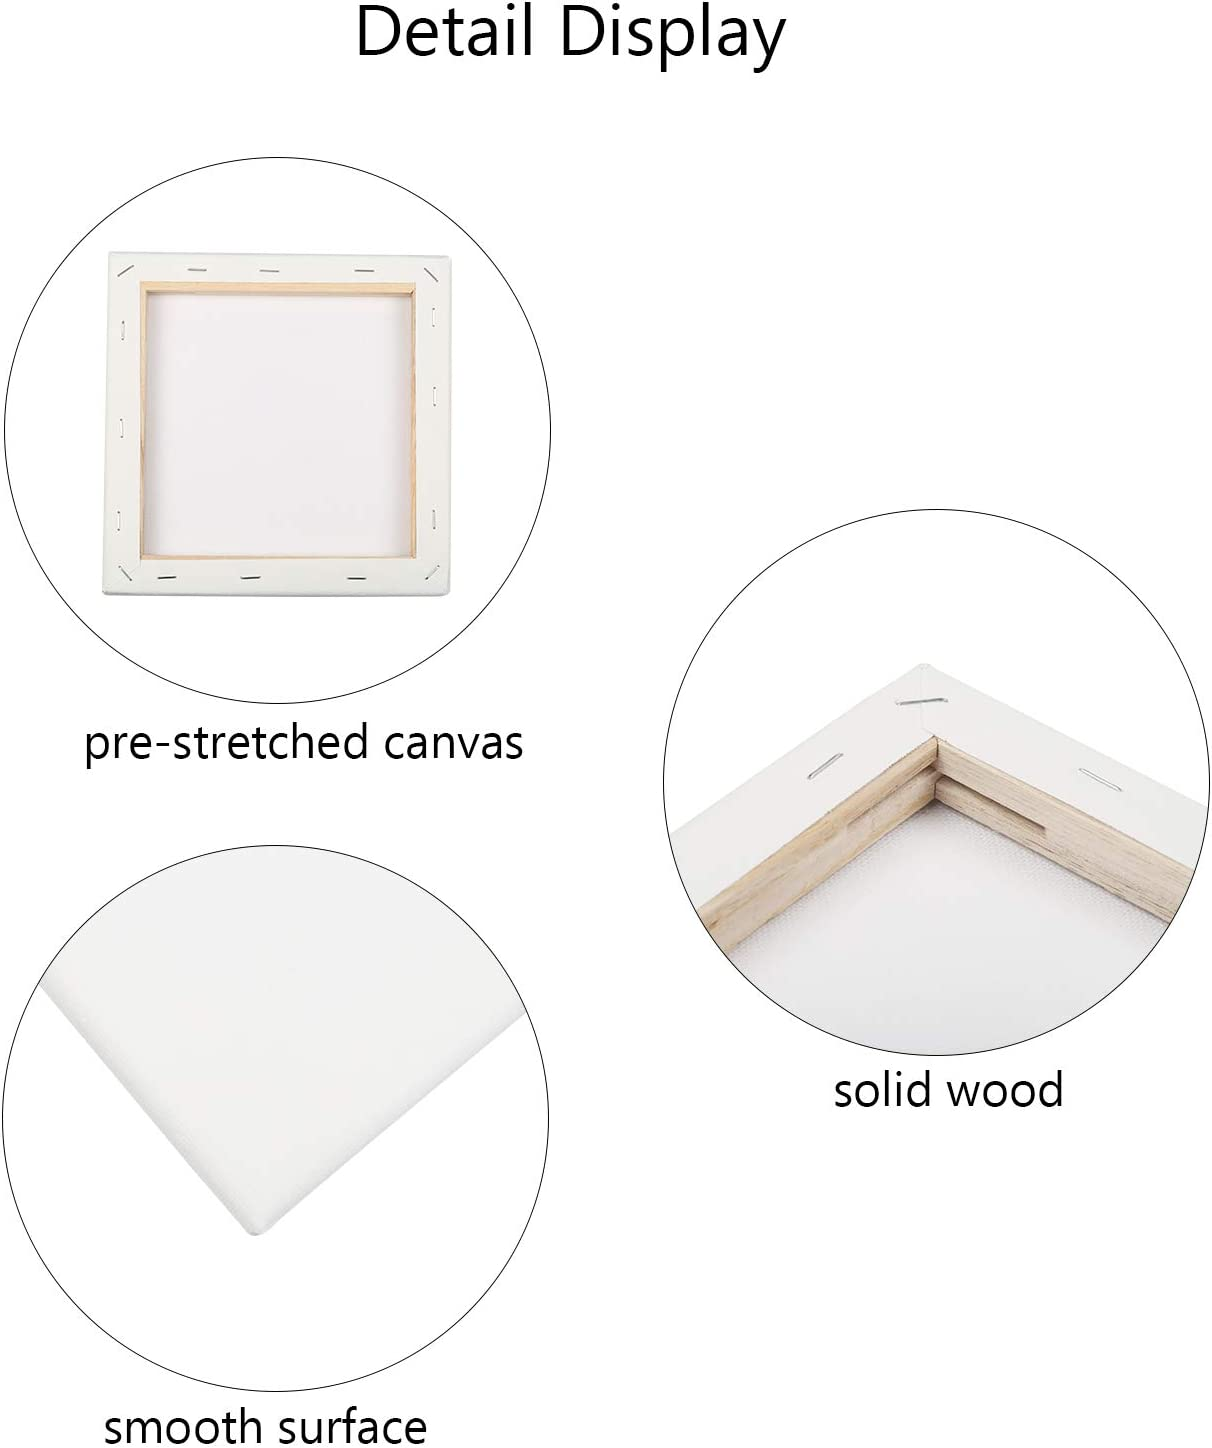 LAITER 12pcs Mini Artist Blank Canvas Frame Square Pre-Stretched Canvas Panel Oil Water Acrylic Painting Board Tiny Wooden Sketchpad for DIY Art Crafts Drawing Decoration Gift